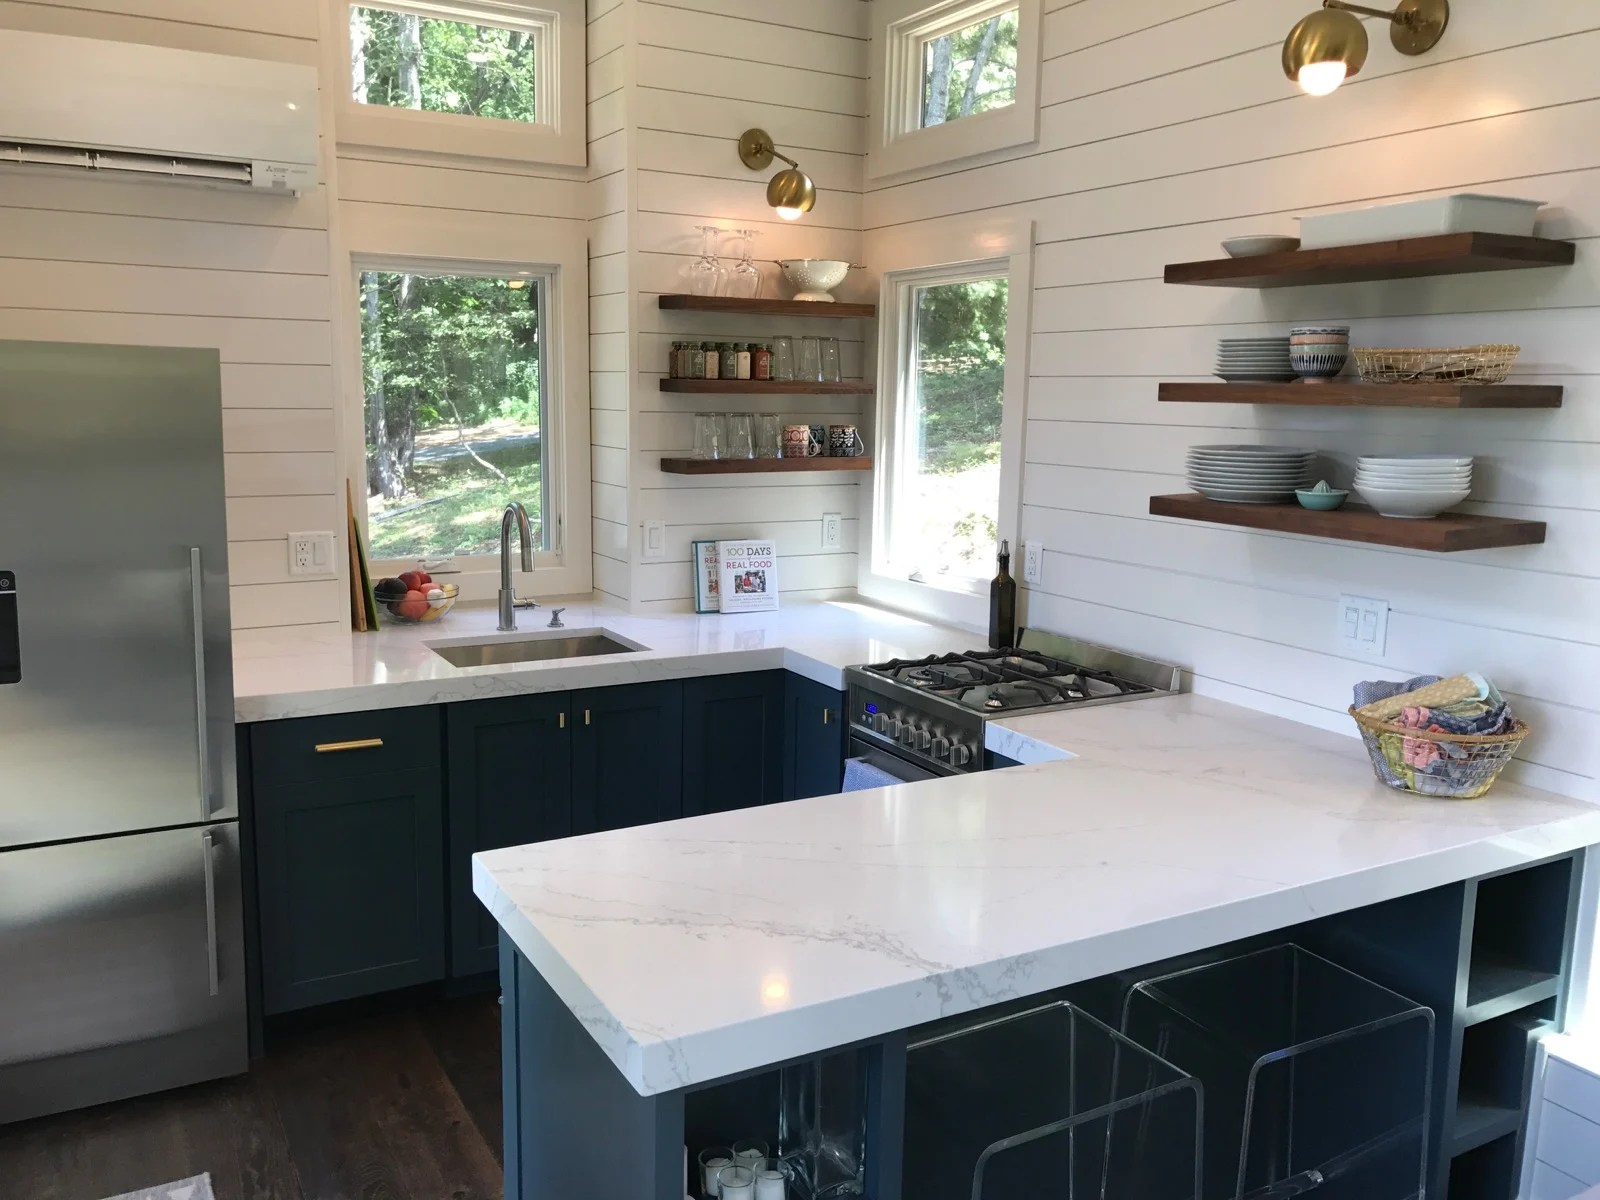 ' In Tiny House Kitchen - 100 Days Of Real Food